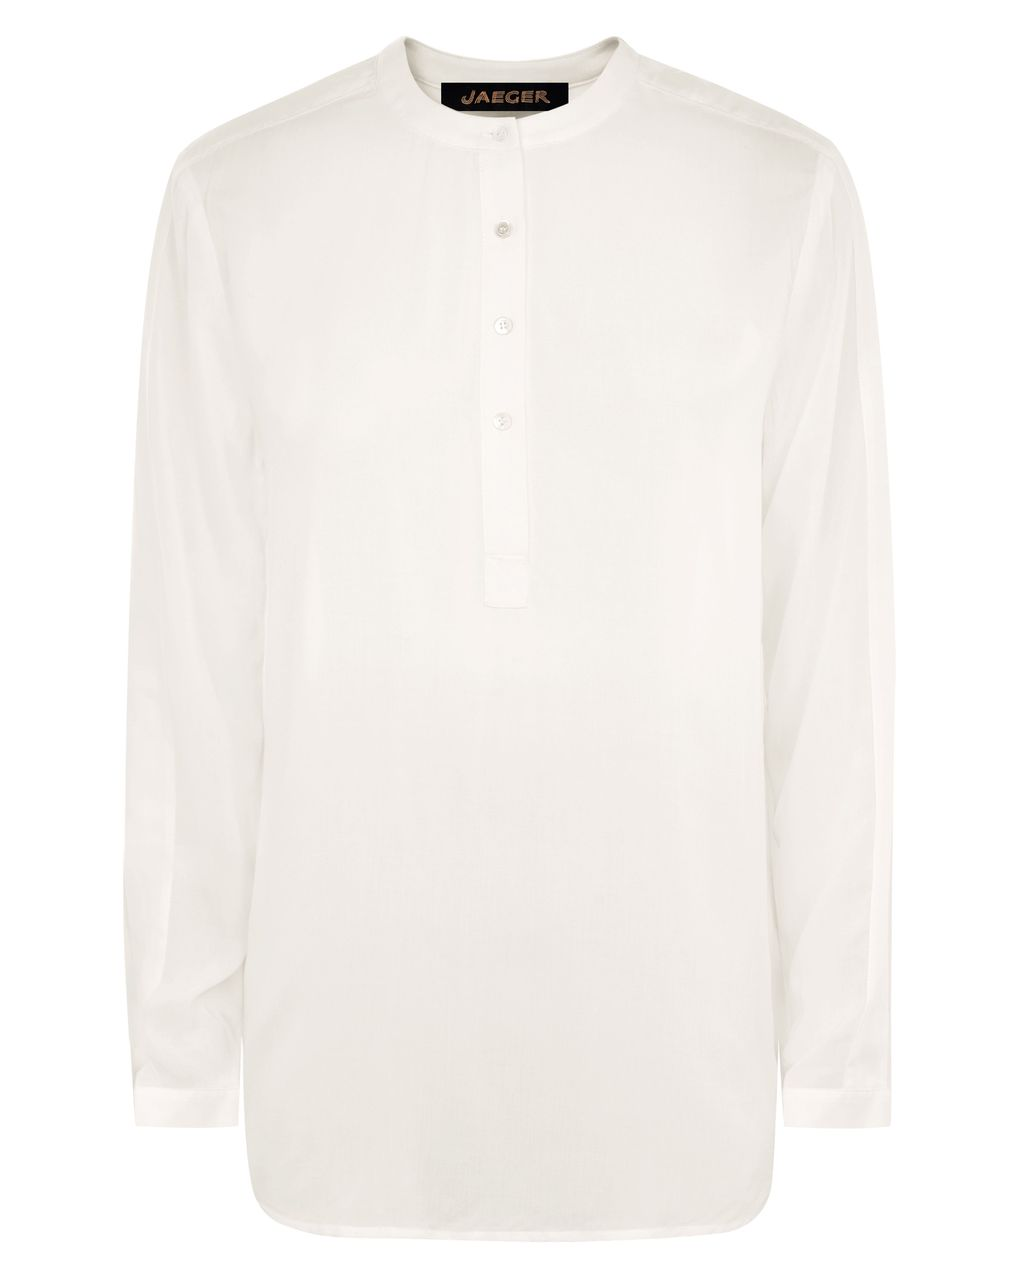 Casual Shirt, White - pattern: plain; length: below the bottom; style: shirt; predominant colour: white; occasions: casual, creative work; neckline: collarstand; fibres: viscose/rayon - 100%; fit: body skimming; sleeve length: long sleeve; sleeve style: standard; pattern type: fabric; texture group: other - light to midweight; season: s/s 2016; wardrobe: basic